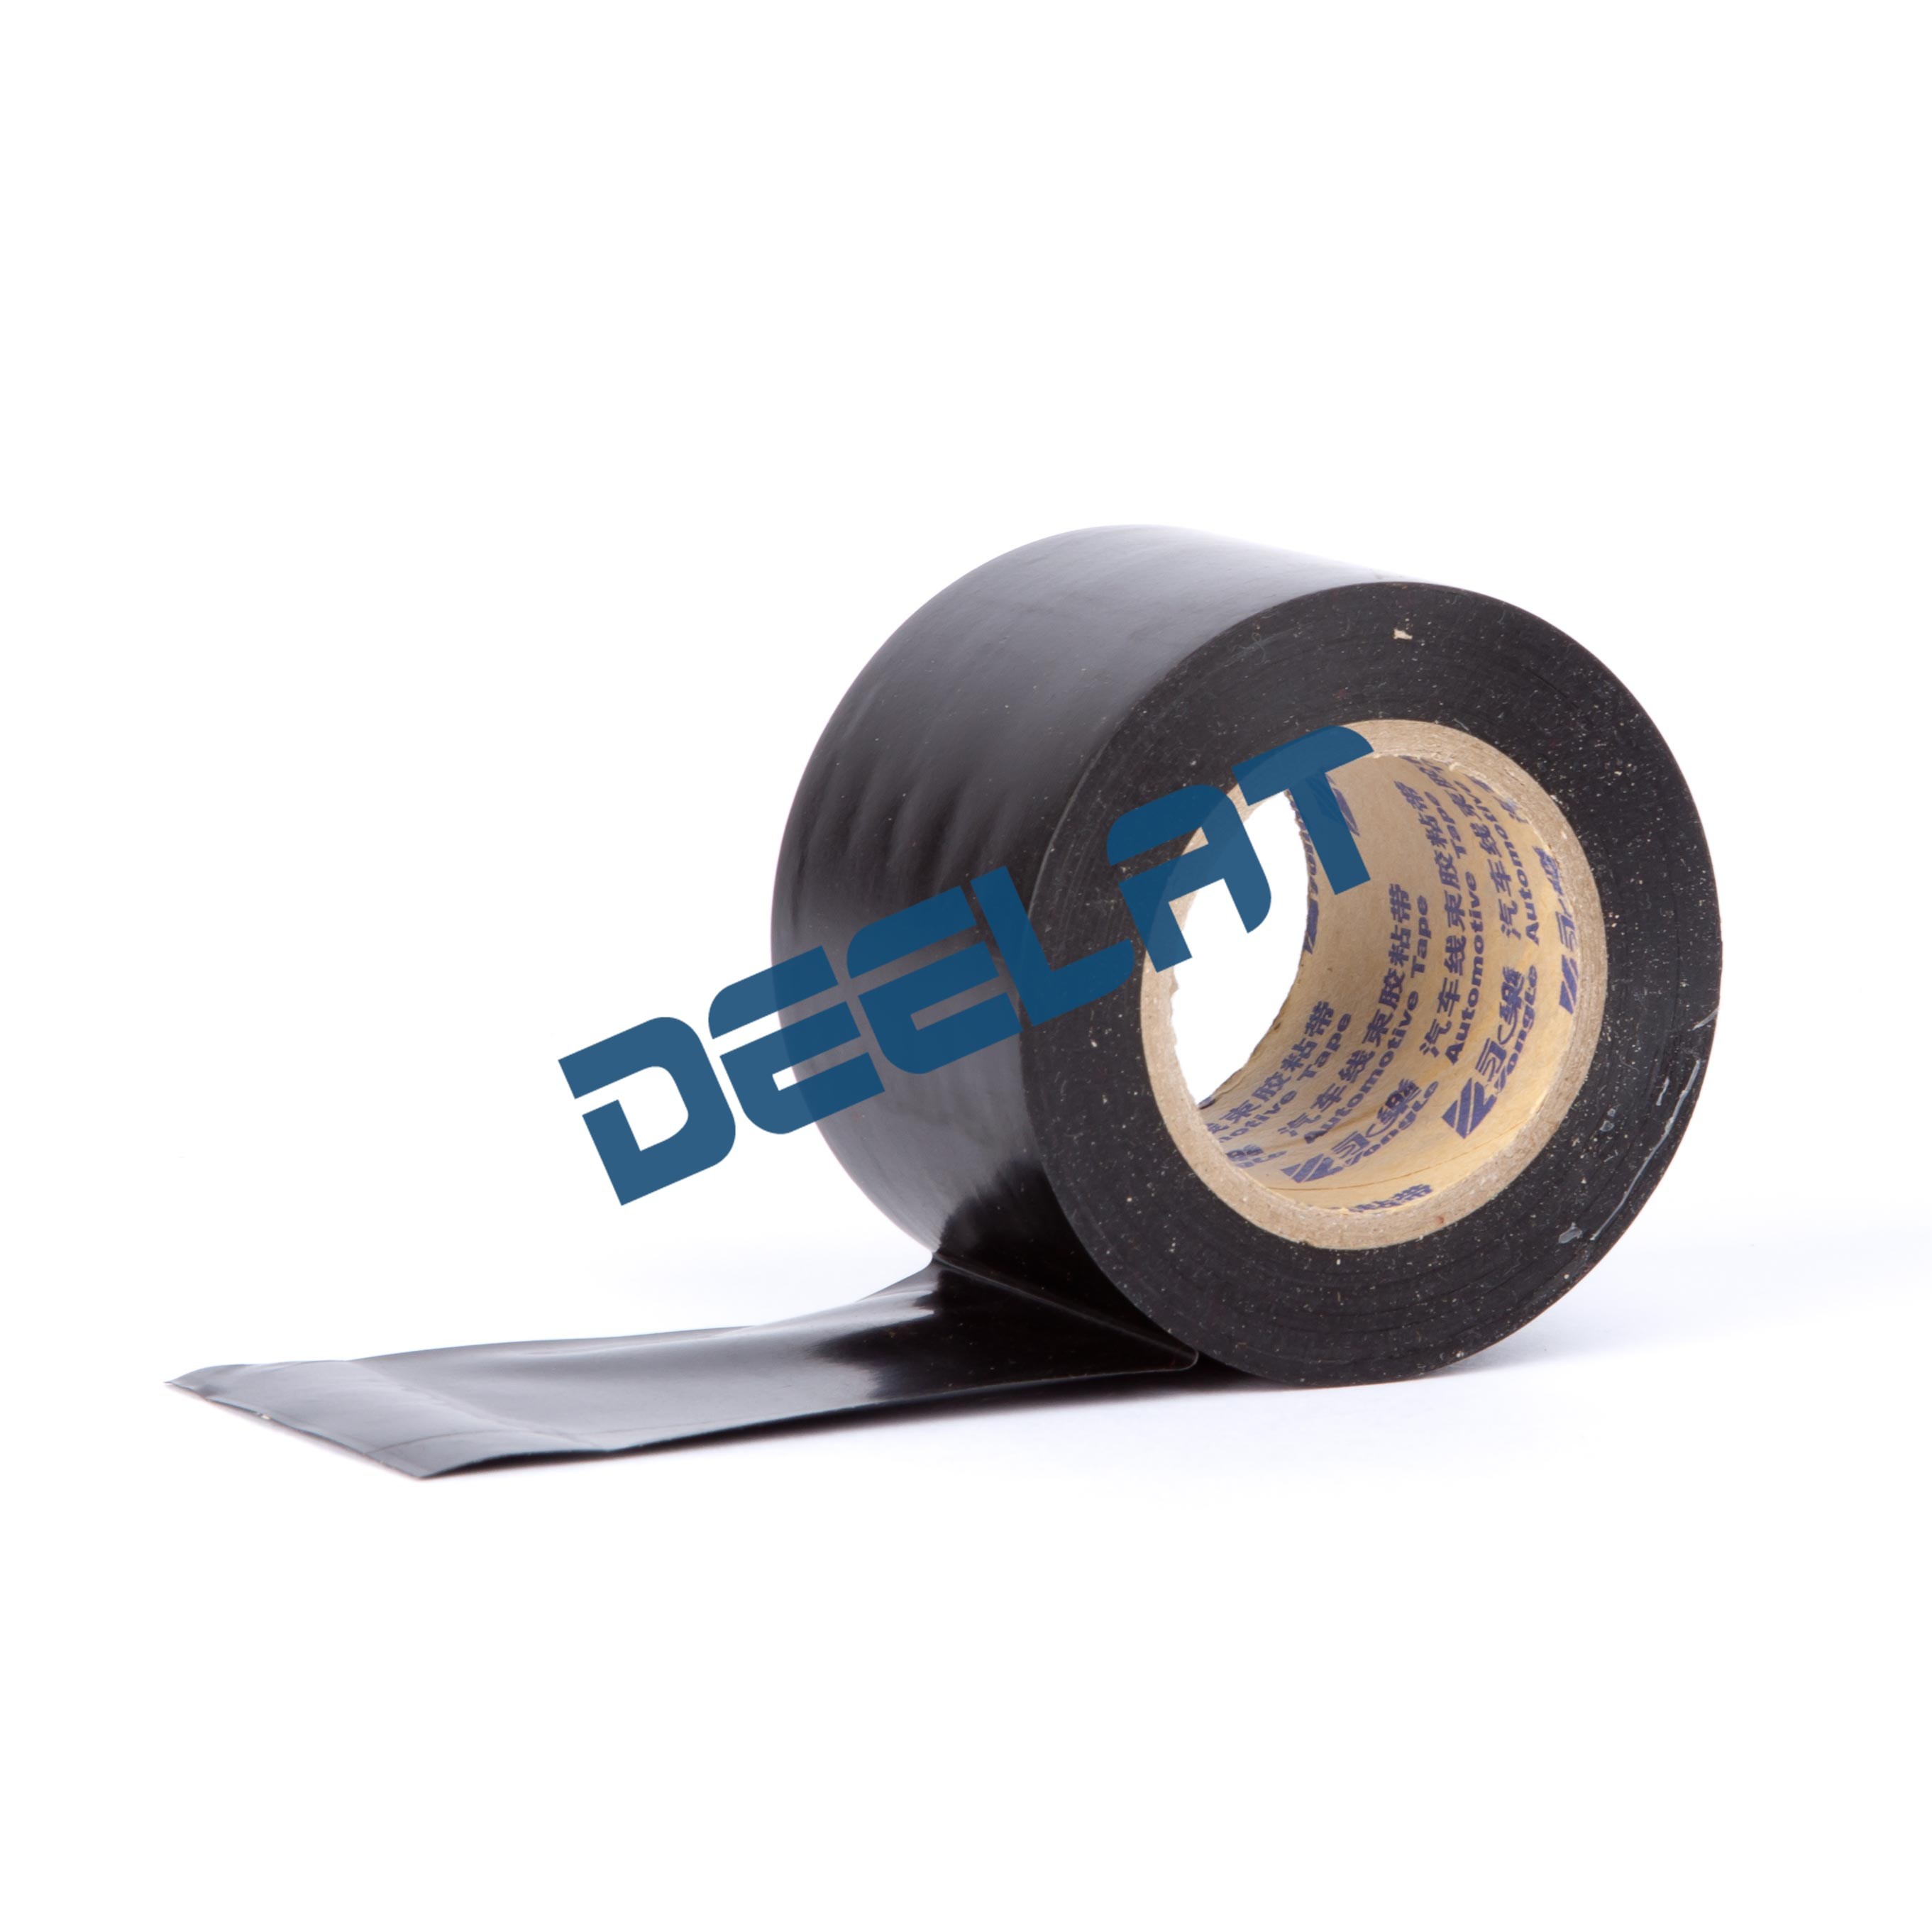 Deelat Blog Automotive Wire Harness Tape Uses Types And Applications Car Wiring Supplies